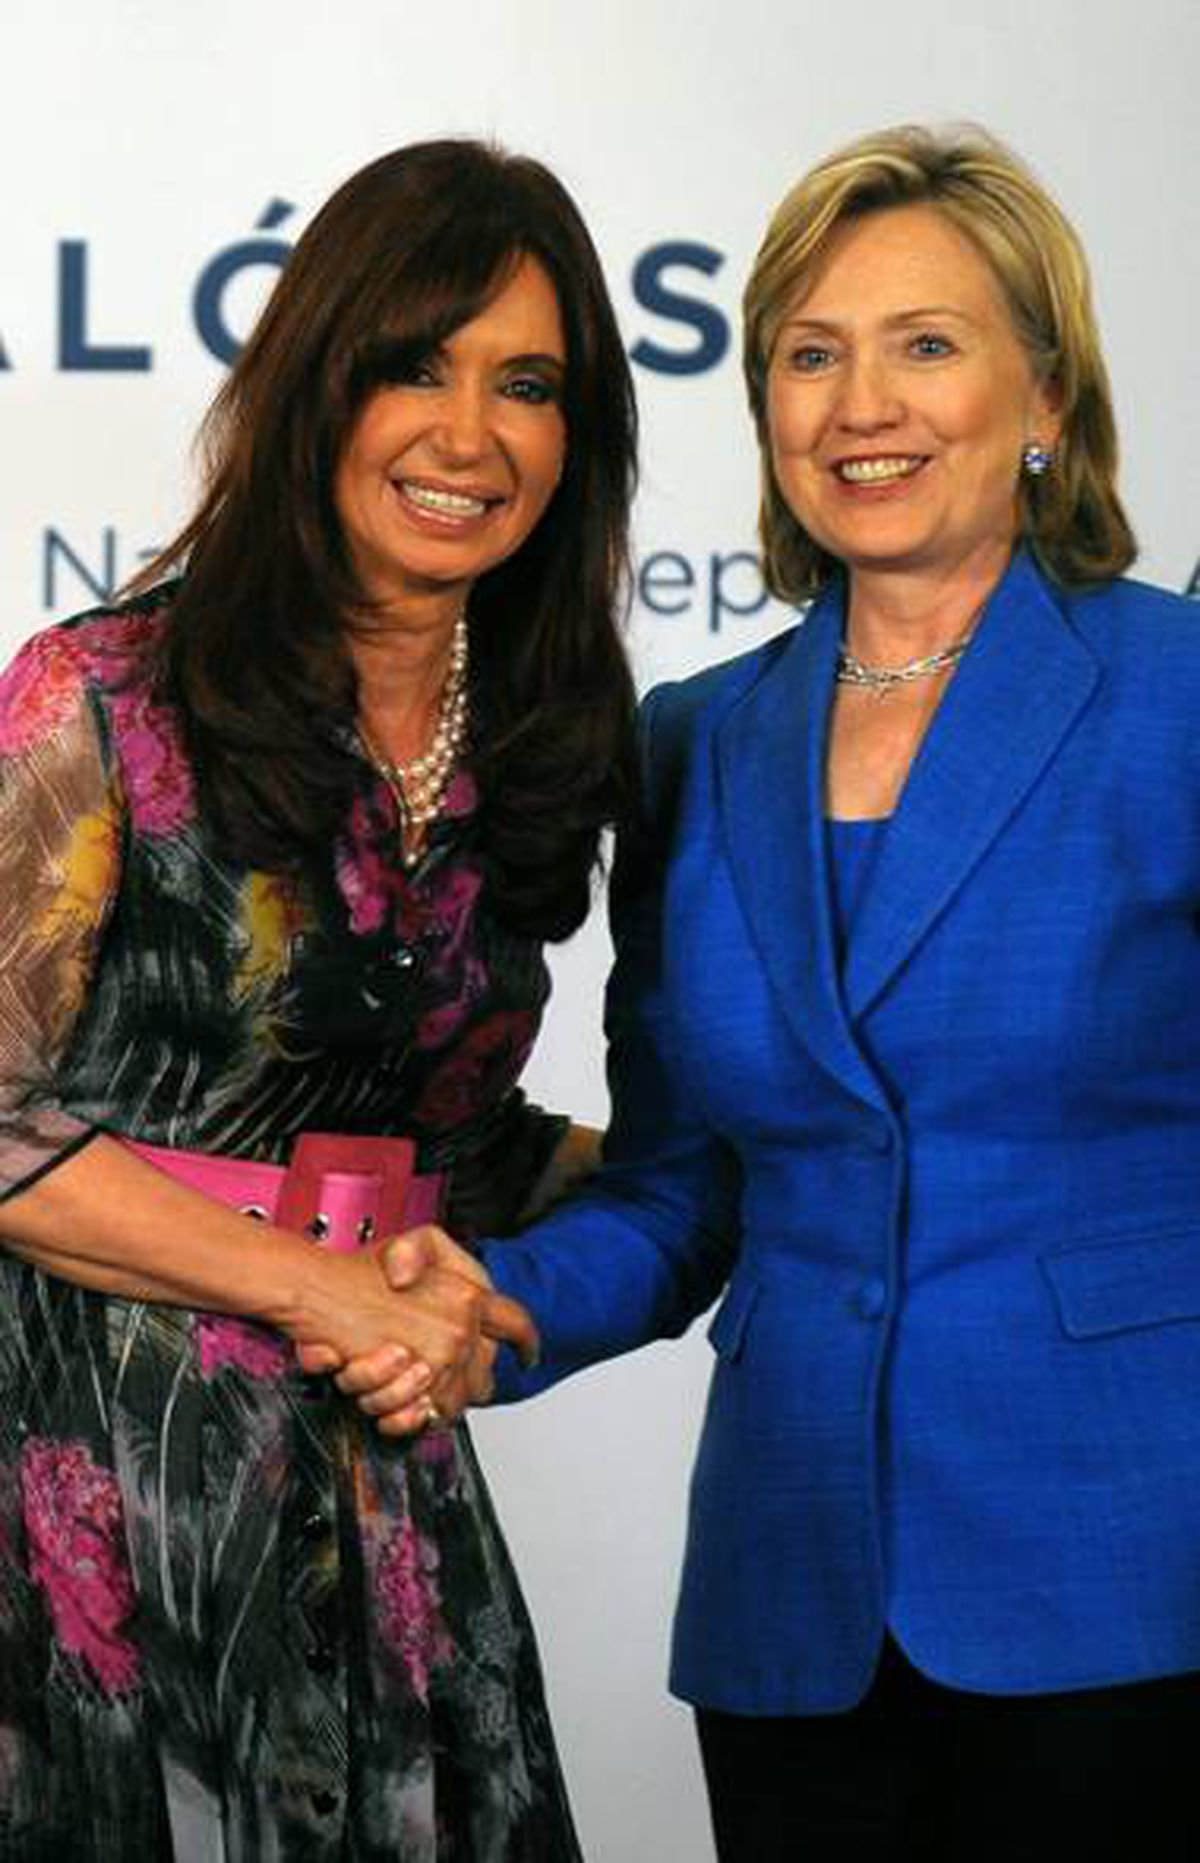 ARGENTINA: U.S. Secretary of State Hillary Clinton questioned the mental health of Argentina's President Cristina Fernandez de Kirchner, asking U.S. diplomats to investigate whether she was on medication.